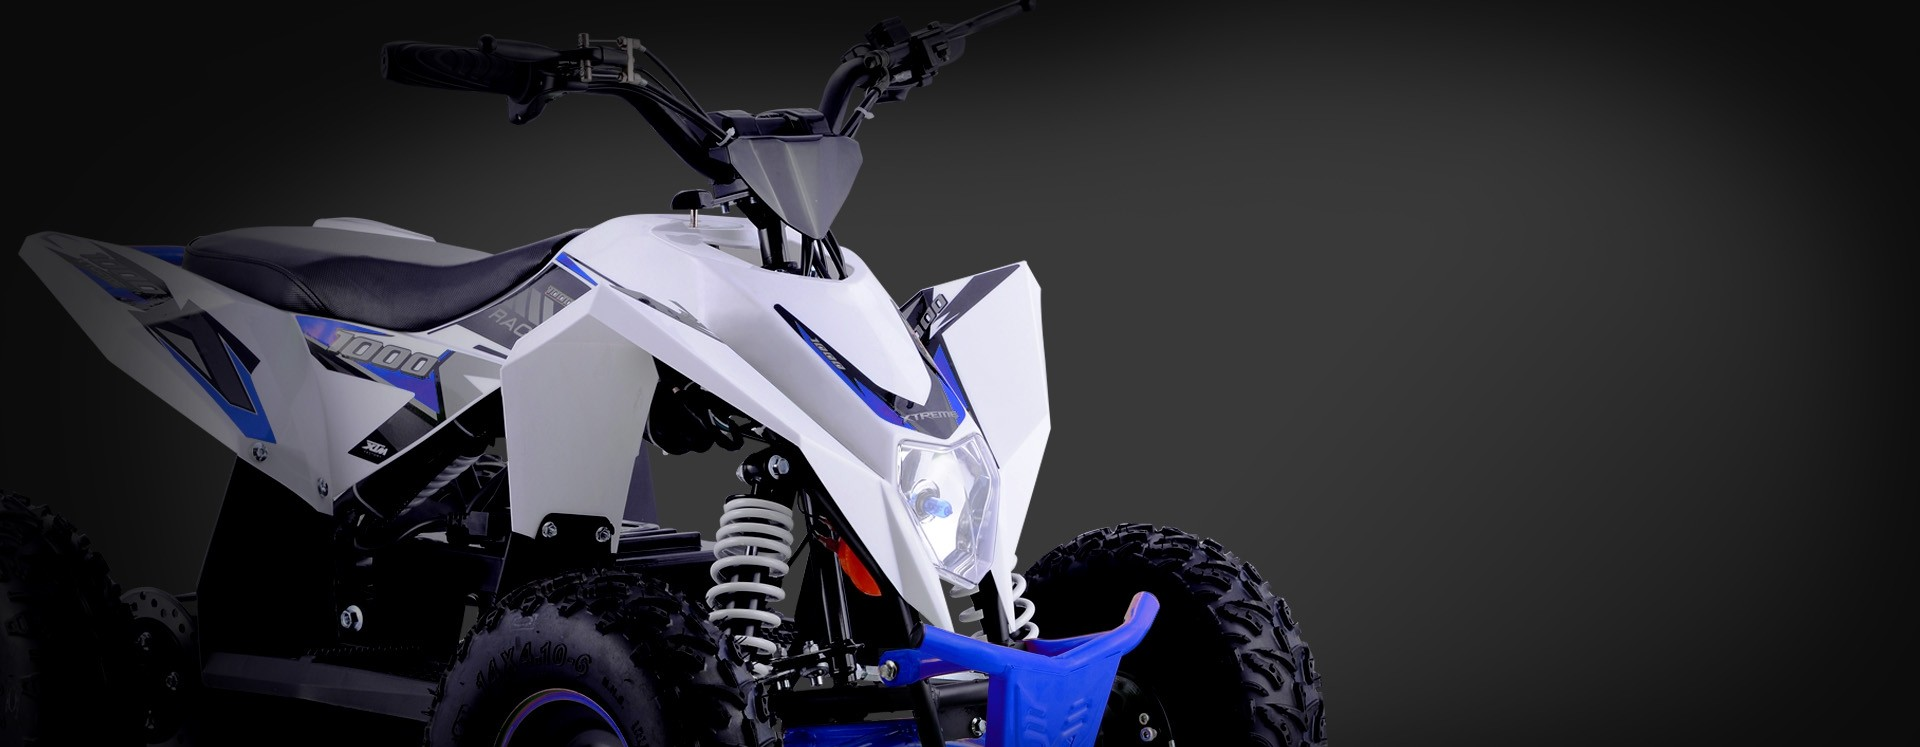 XTM RACING 1000w QUAD BIKE WHITE BLUE